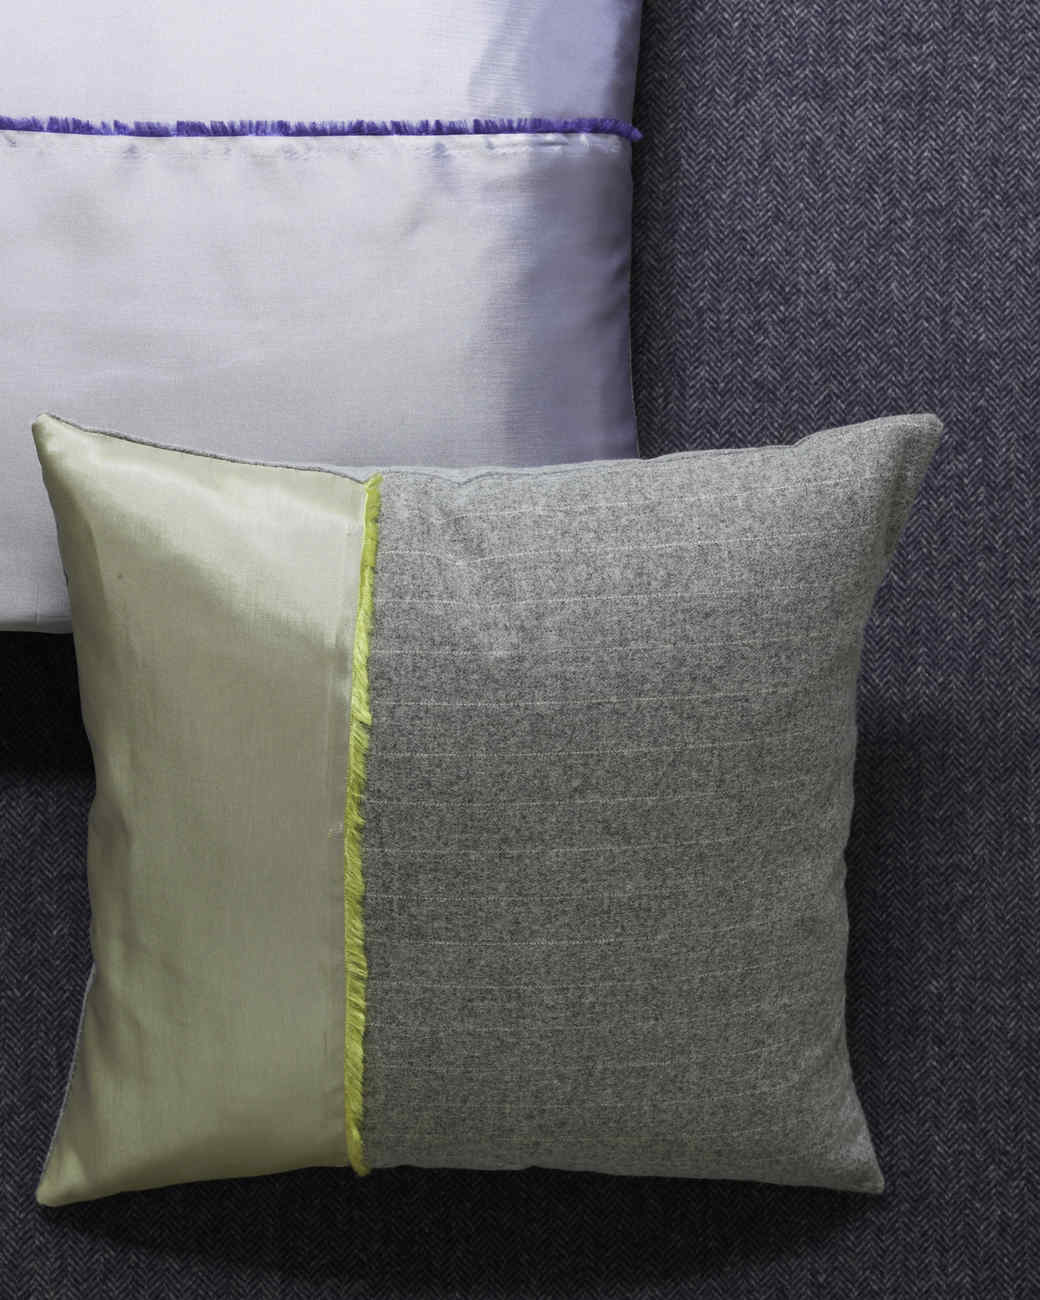 26 Pillow Projects That are Cozy Comfortable and Easy to Make   Martha Stewart & 26 Pillow Projects That are Cozy Comfortable and Easy to Make ... pillowsntoast.com